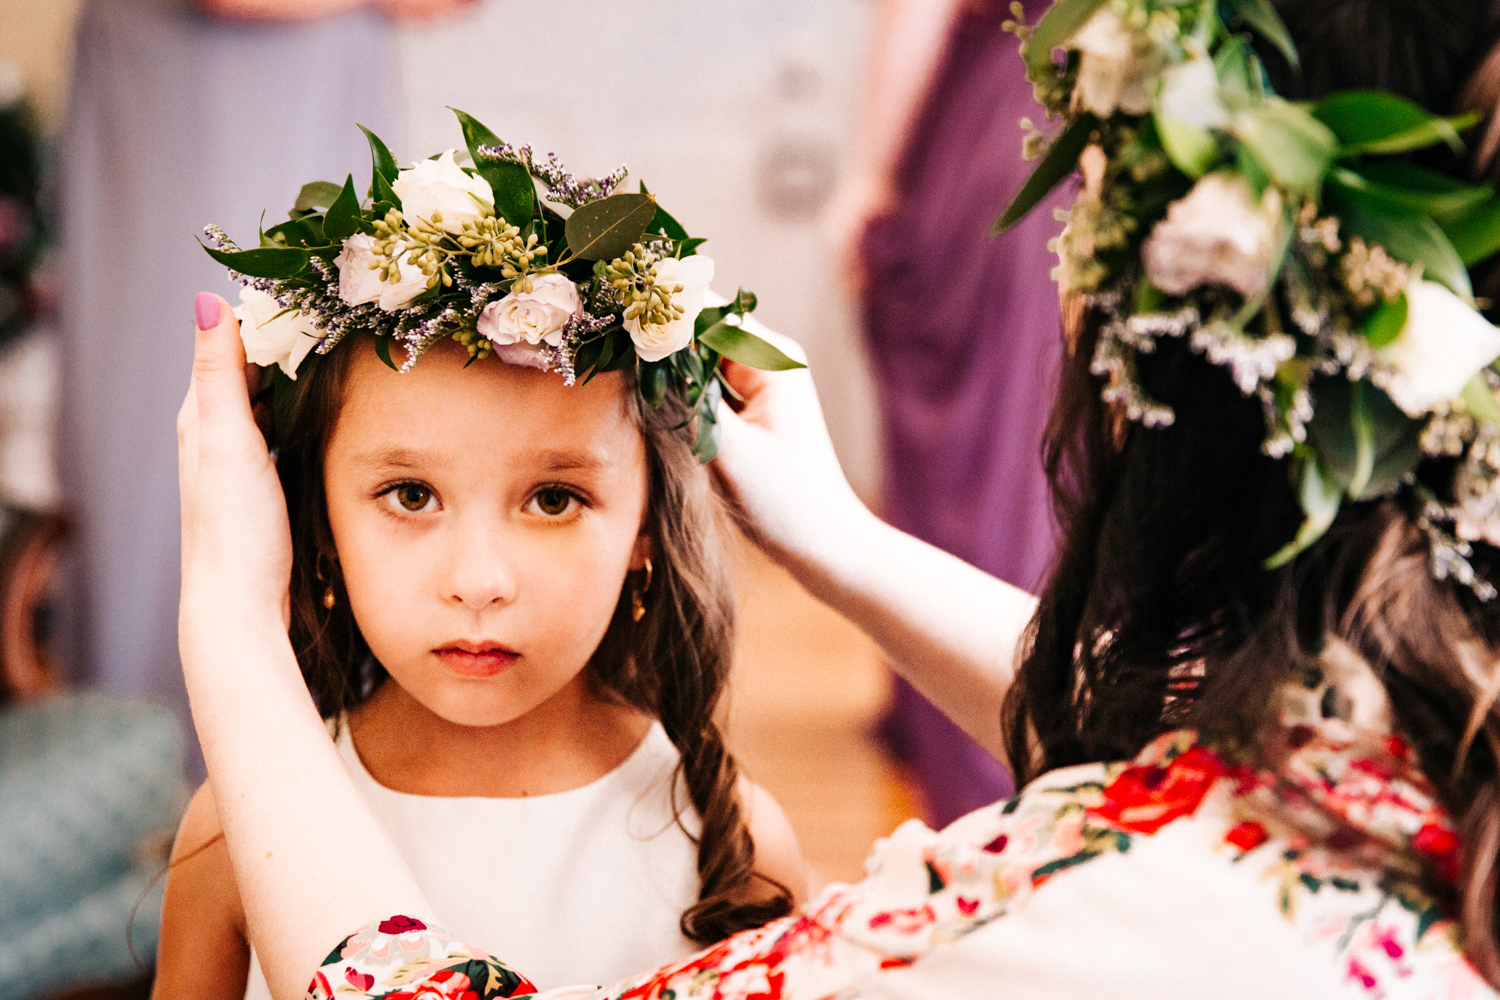 flower-girl-crown-new-england-wedding-gwyn-careg-inn-pomfret-connecticut-rhode-island-massachusetts.jpg